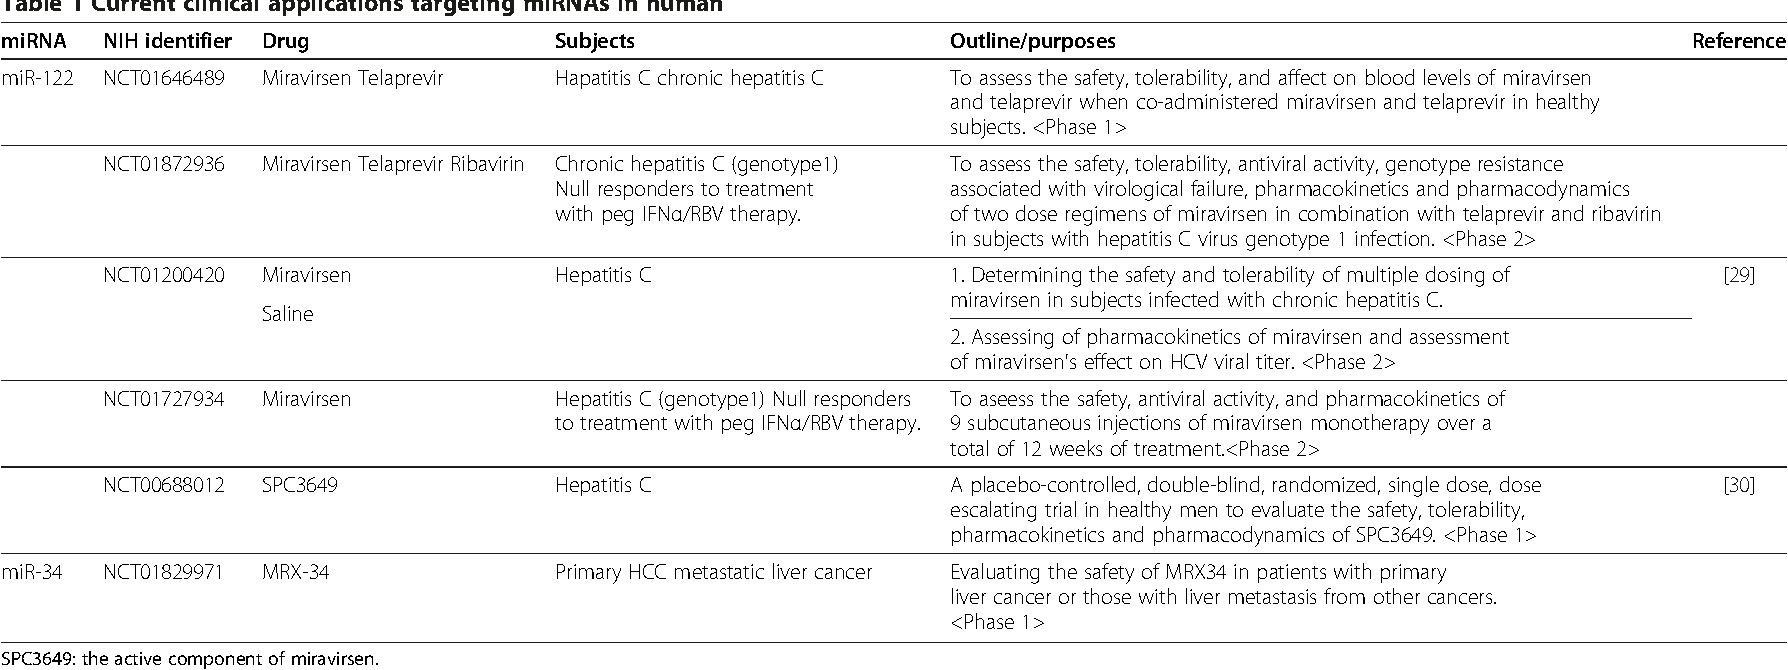 Table 1 Current clinical applications targeting miRNAs in human